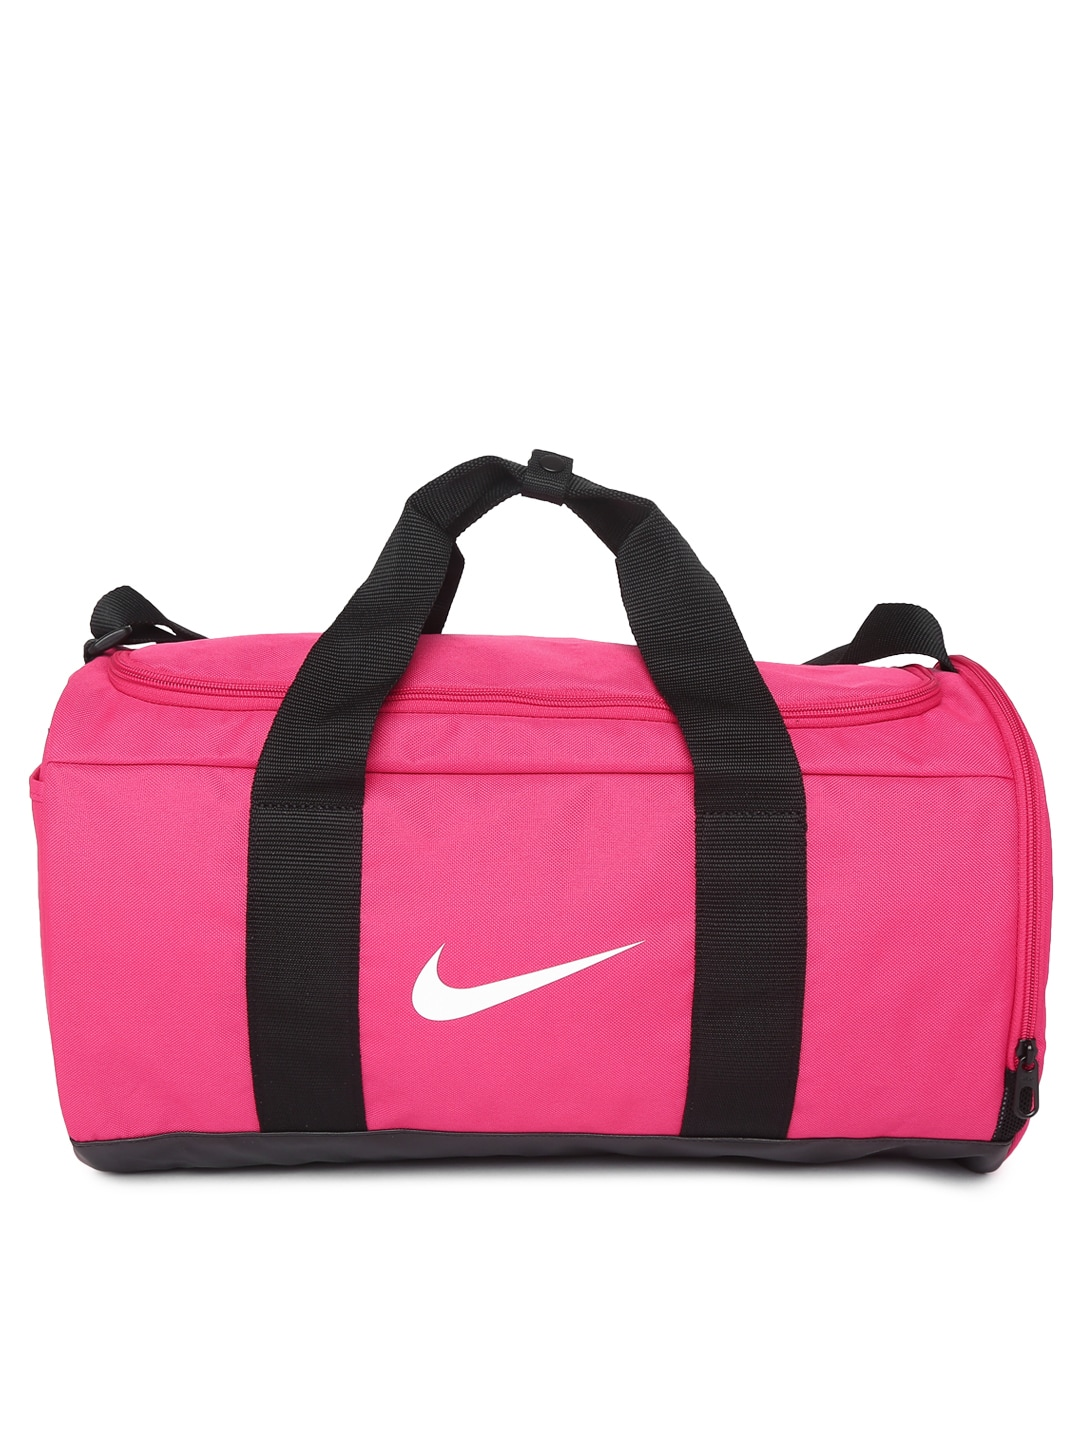 9909d5864bab Netherlands Duffle Bags - Buy Netherlands Duffle Bags online in India